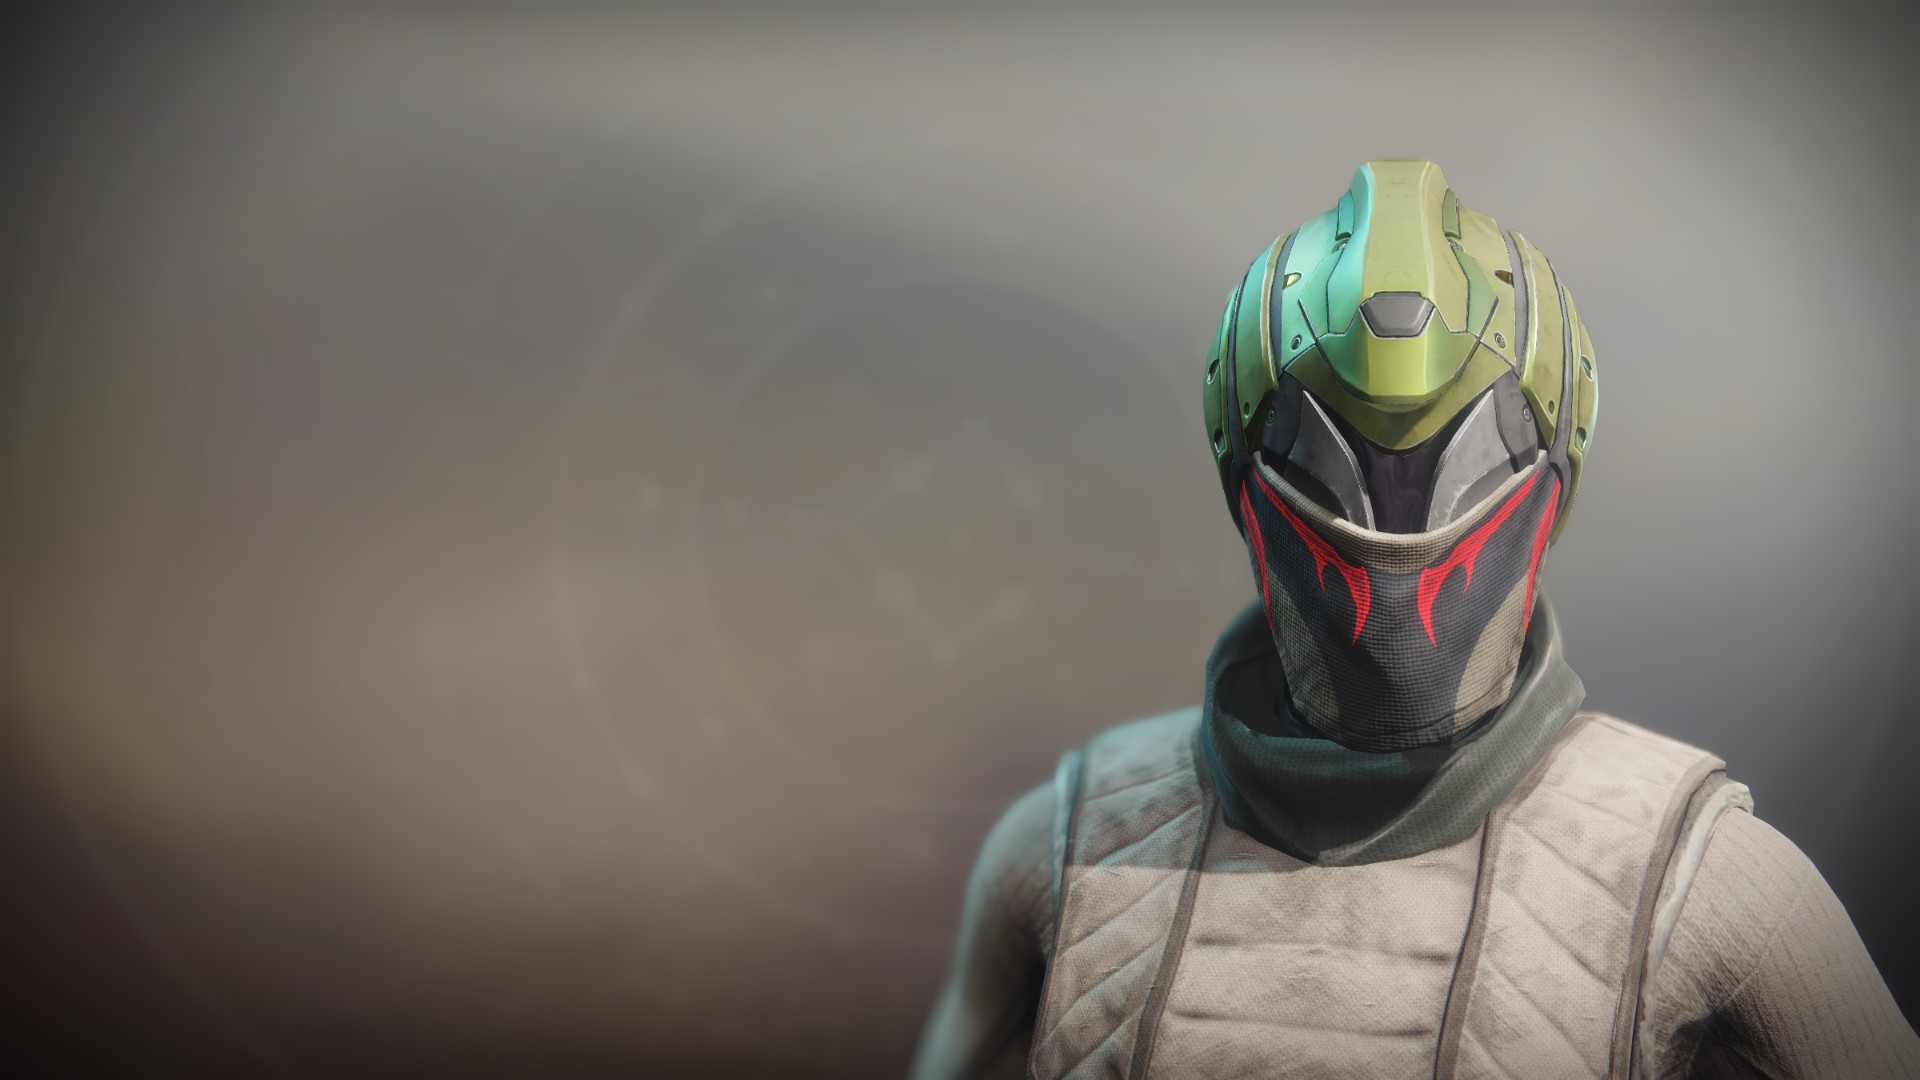 An in-game render of the Illicit Invader Hood.